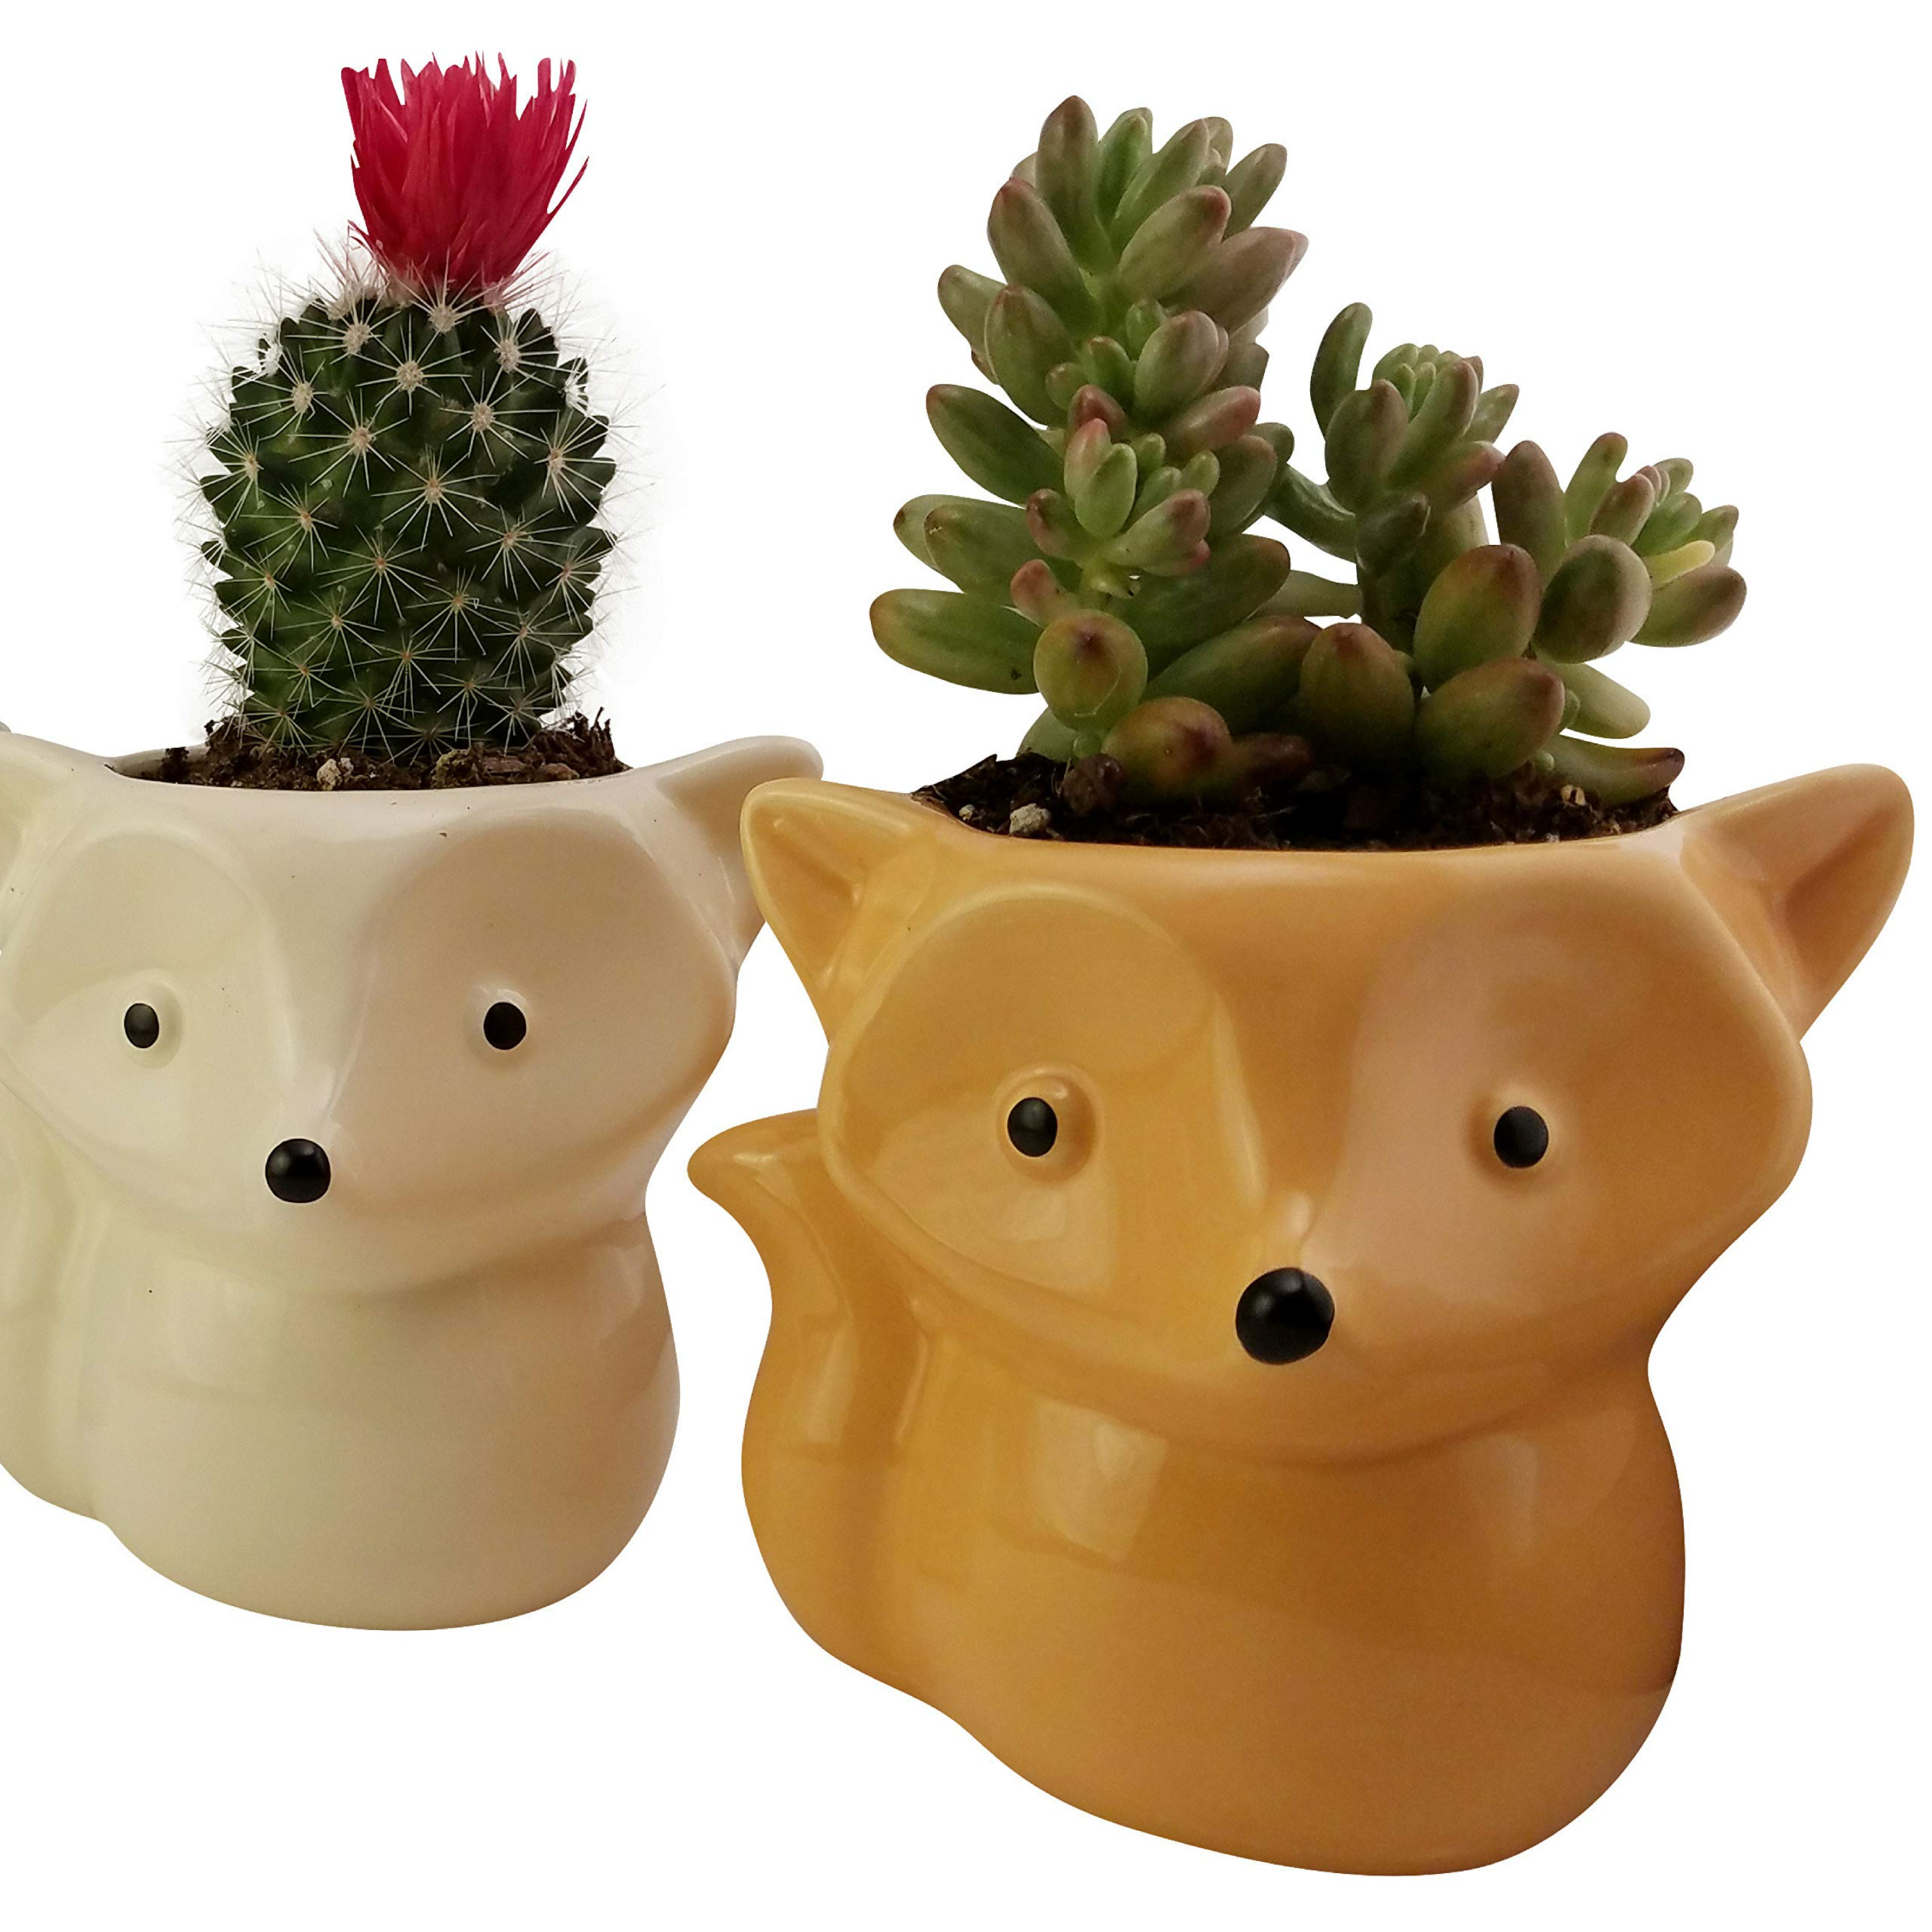 Rayliad Set of 4 Cute Fox Succulent Pots - Pink, Yellow, Orange, Blue Ceramic Planters for Cactus and Plants - with Drainage